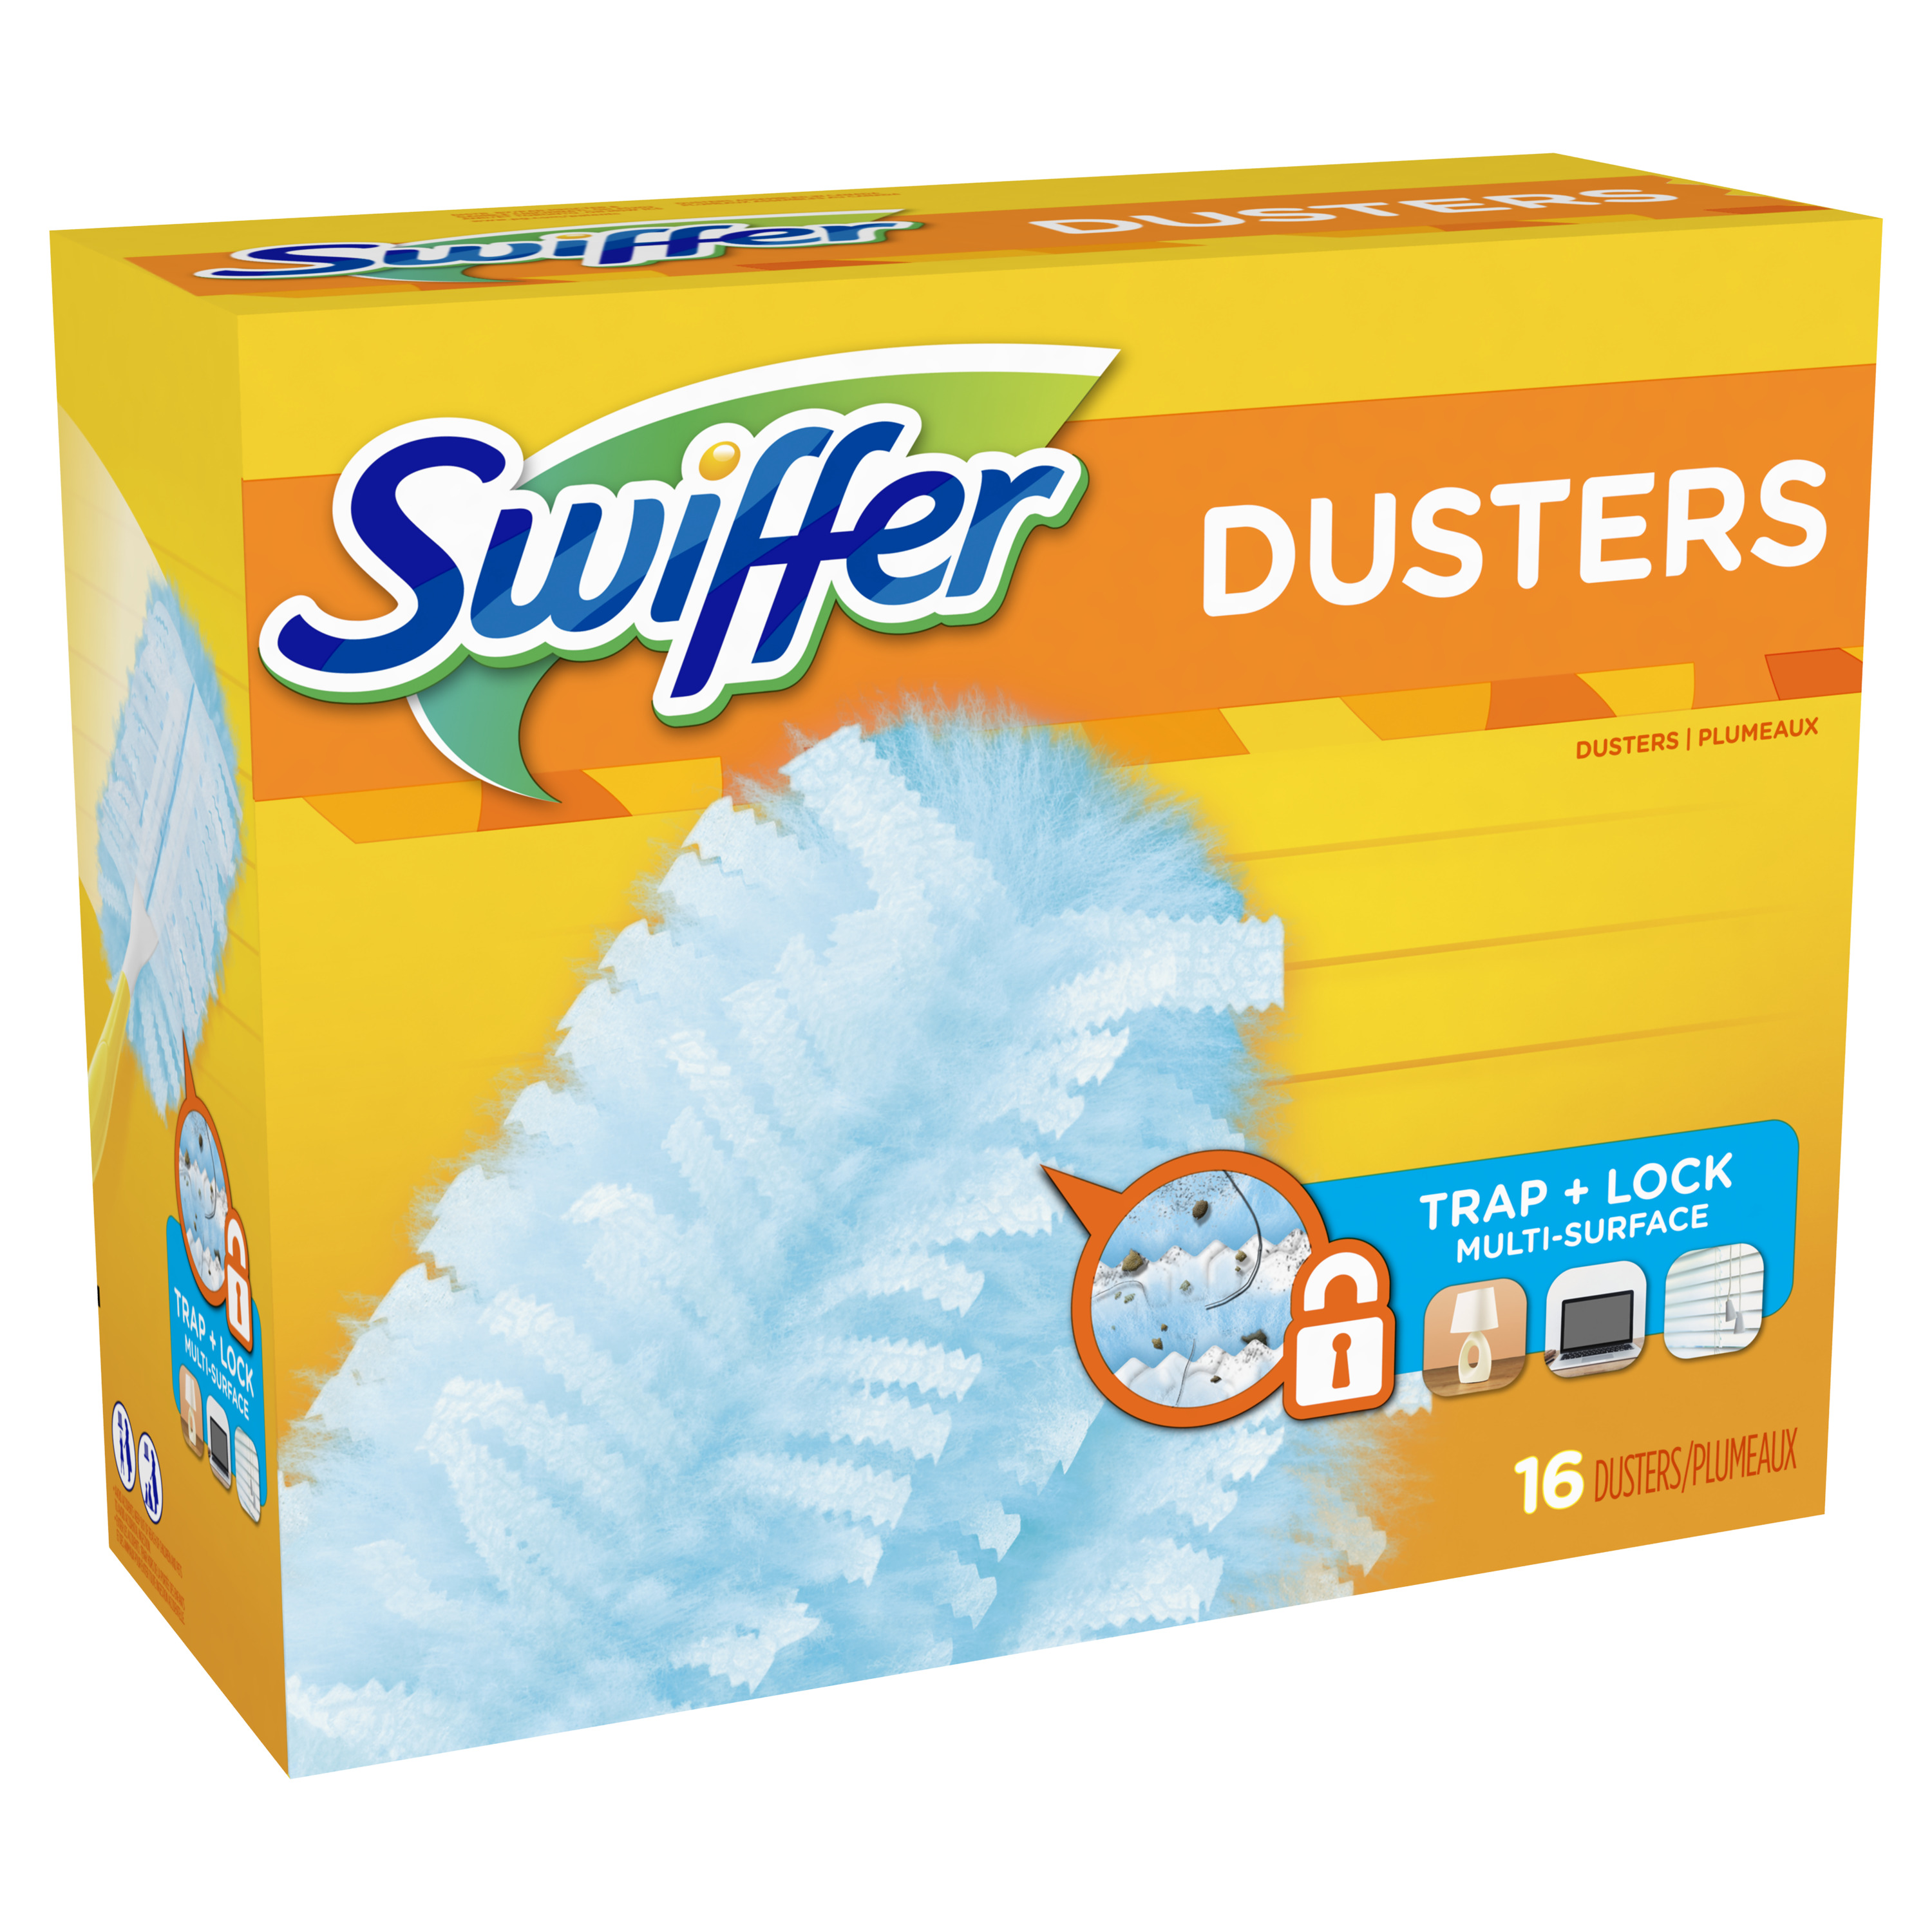 Swiffer 180 Dusters Multi Surface Refills, Unscented, 16 Count